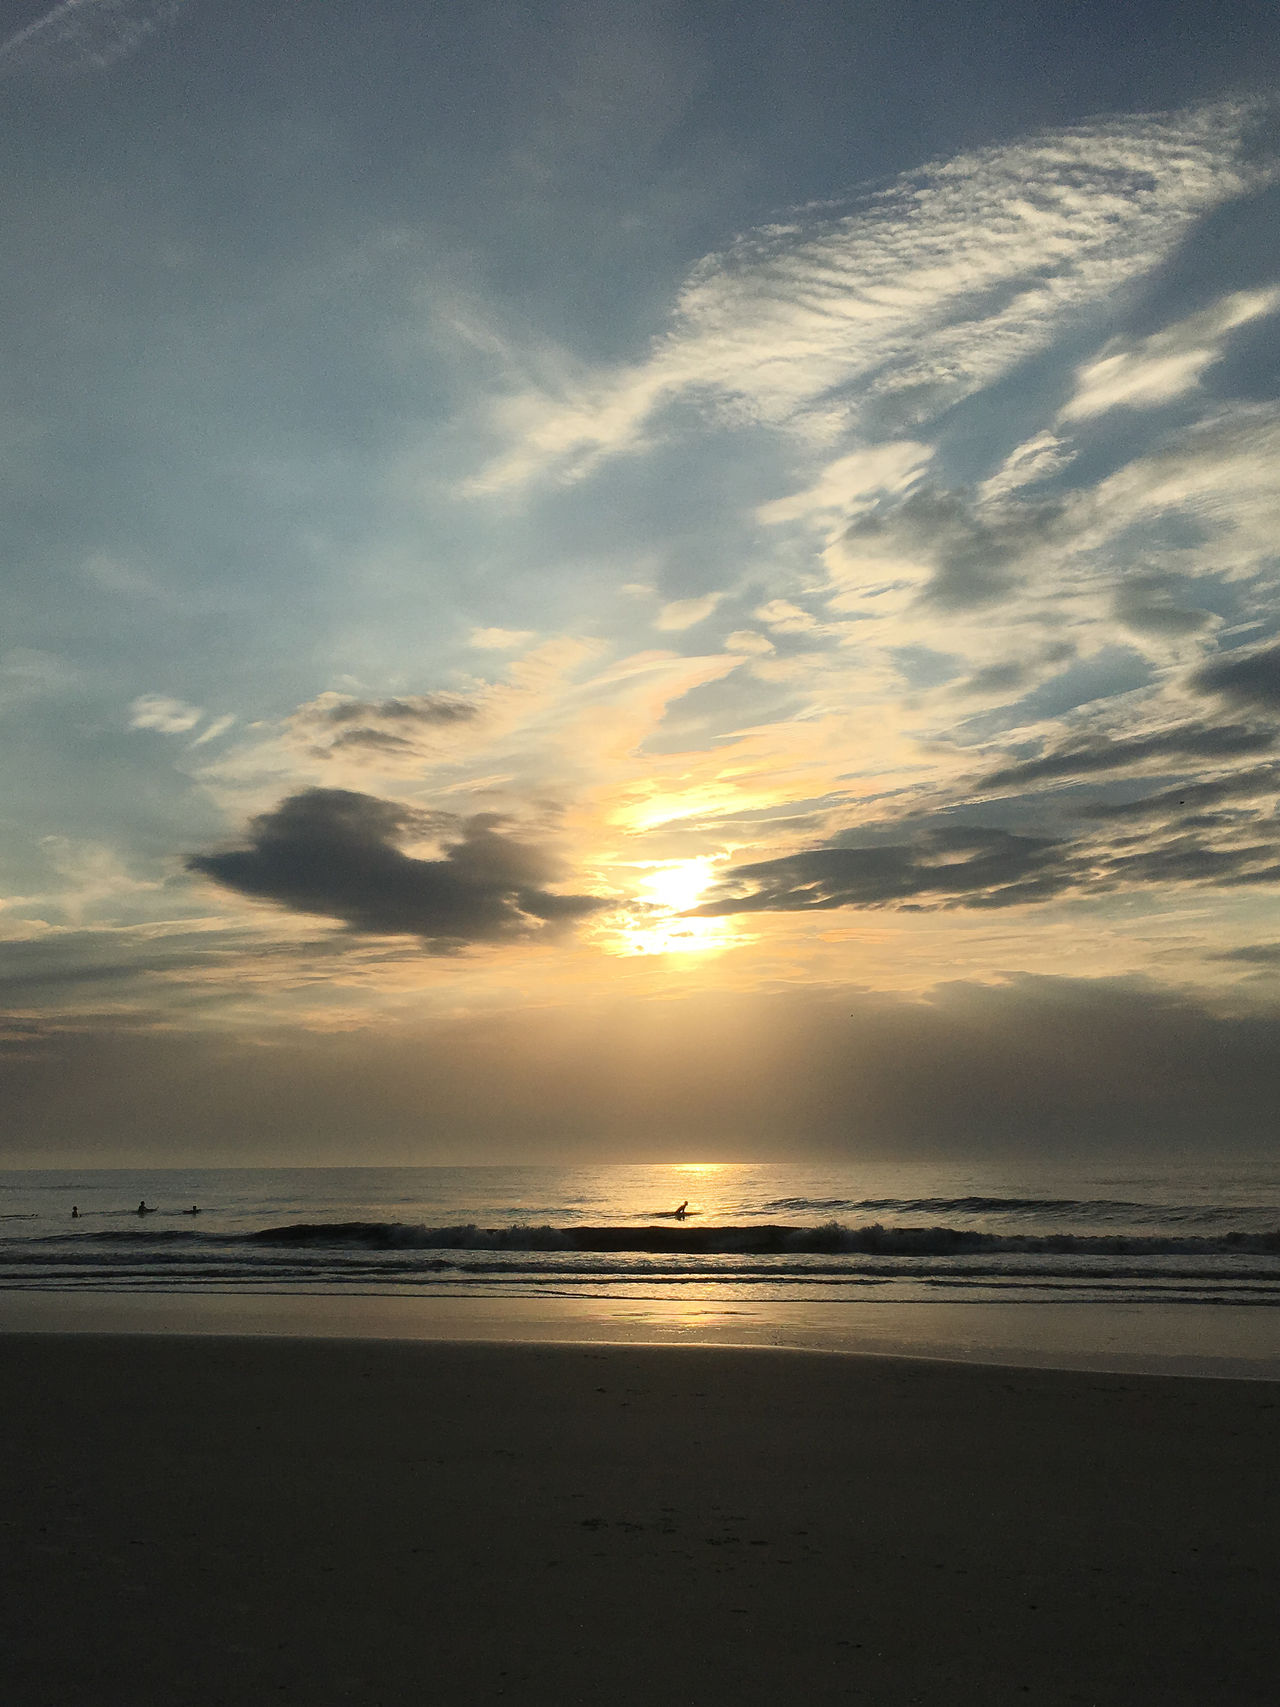 Sunrise Beach Beauty In Nature Cloud - Sky Day Horizon Over Water Idyllic Nature No People Outdoors Sand Scenics Sea Sky Sunset Tranquil Scene Tranquility Water